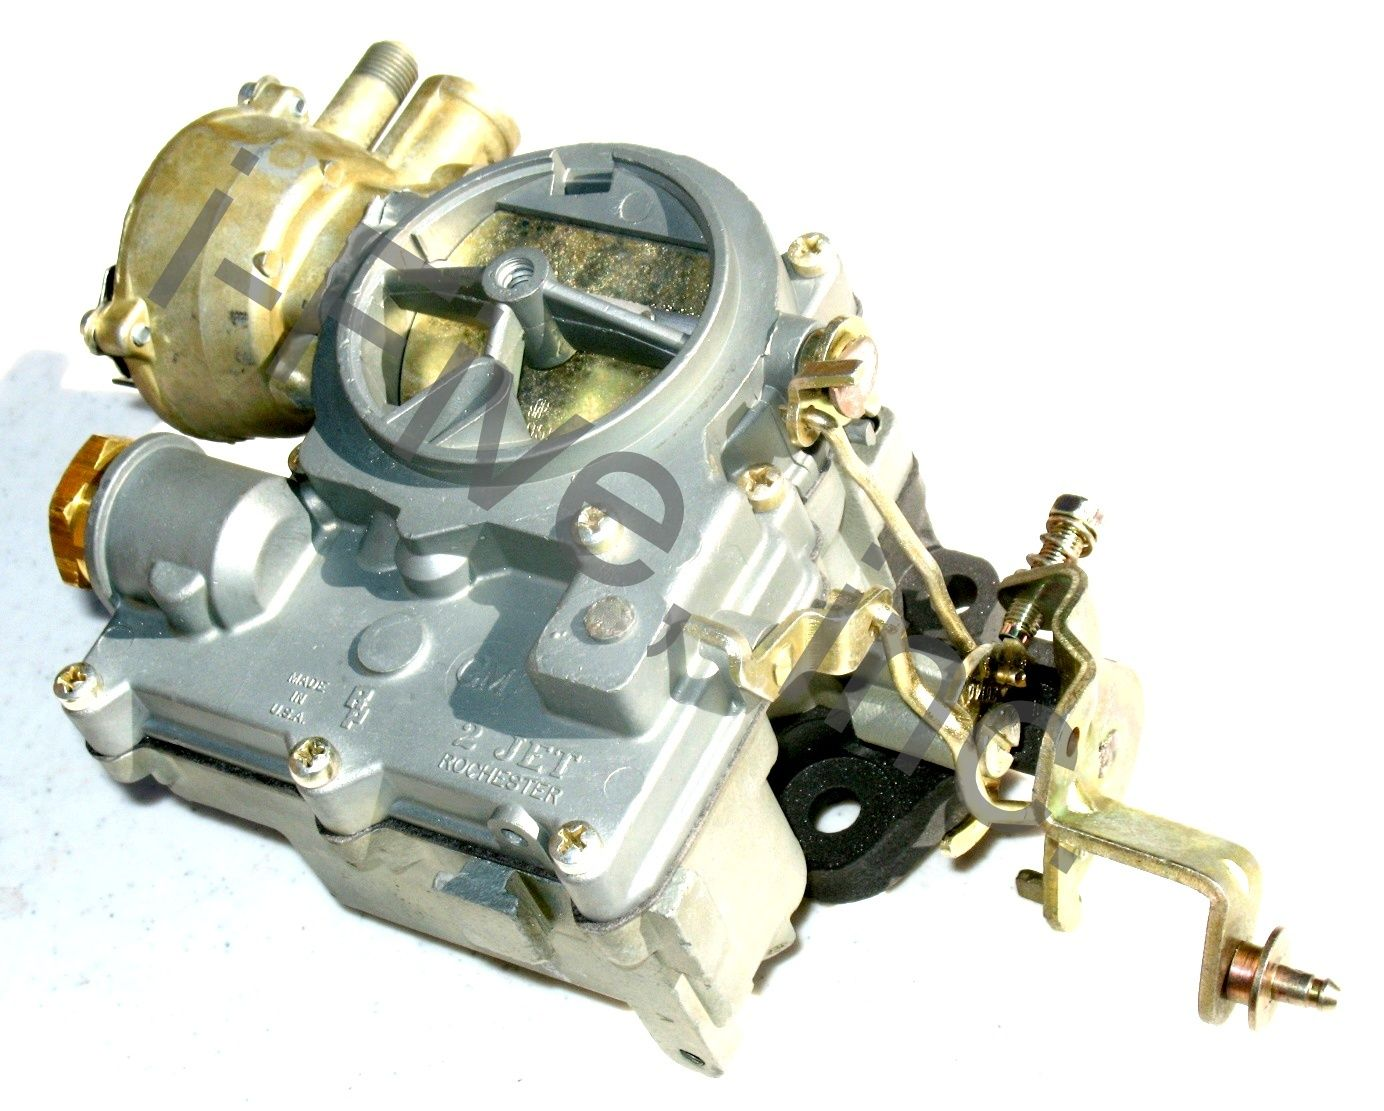 Rochester carburetor for 1966 to 1971 cj5 jeepster commando rochester carburetor for 1966 to 1971 cj5 jeepster commando kaiser dauntless 225 v6 sciox Gallery